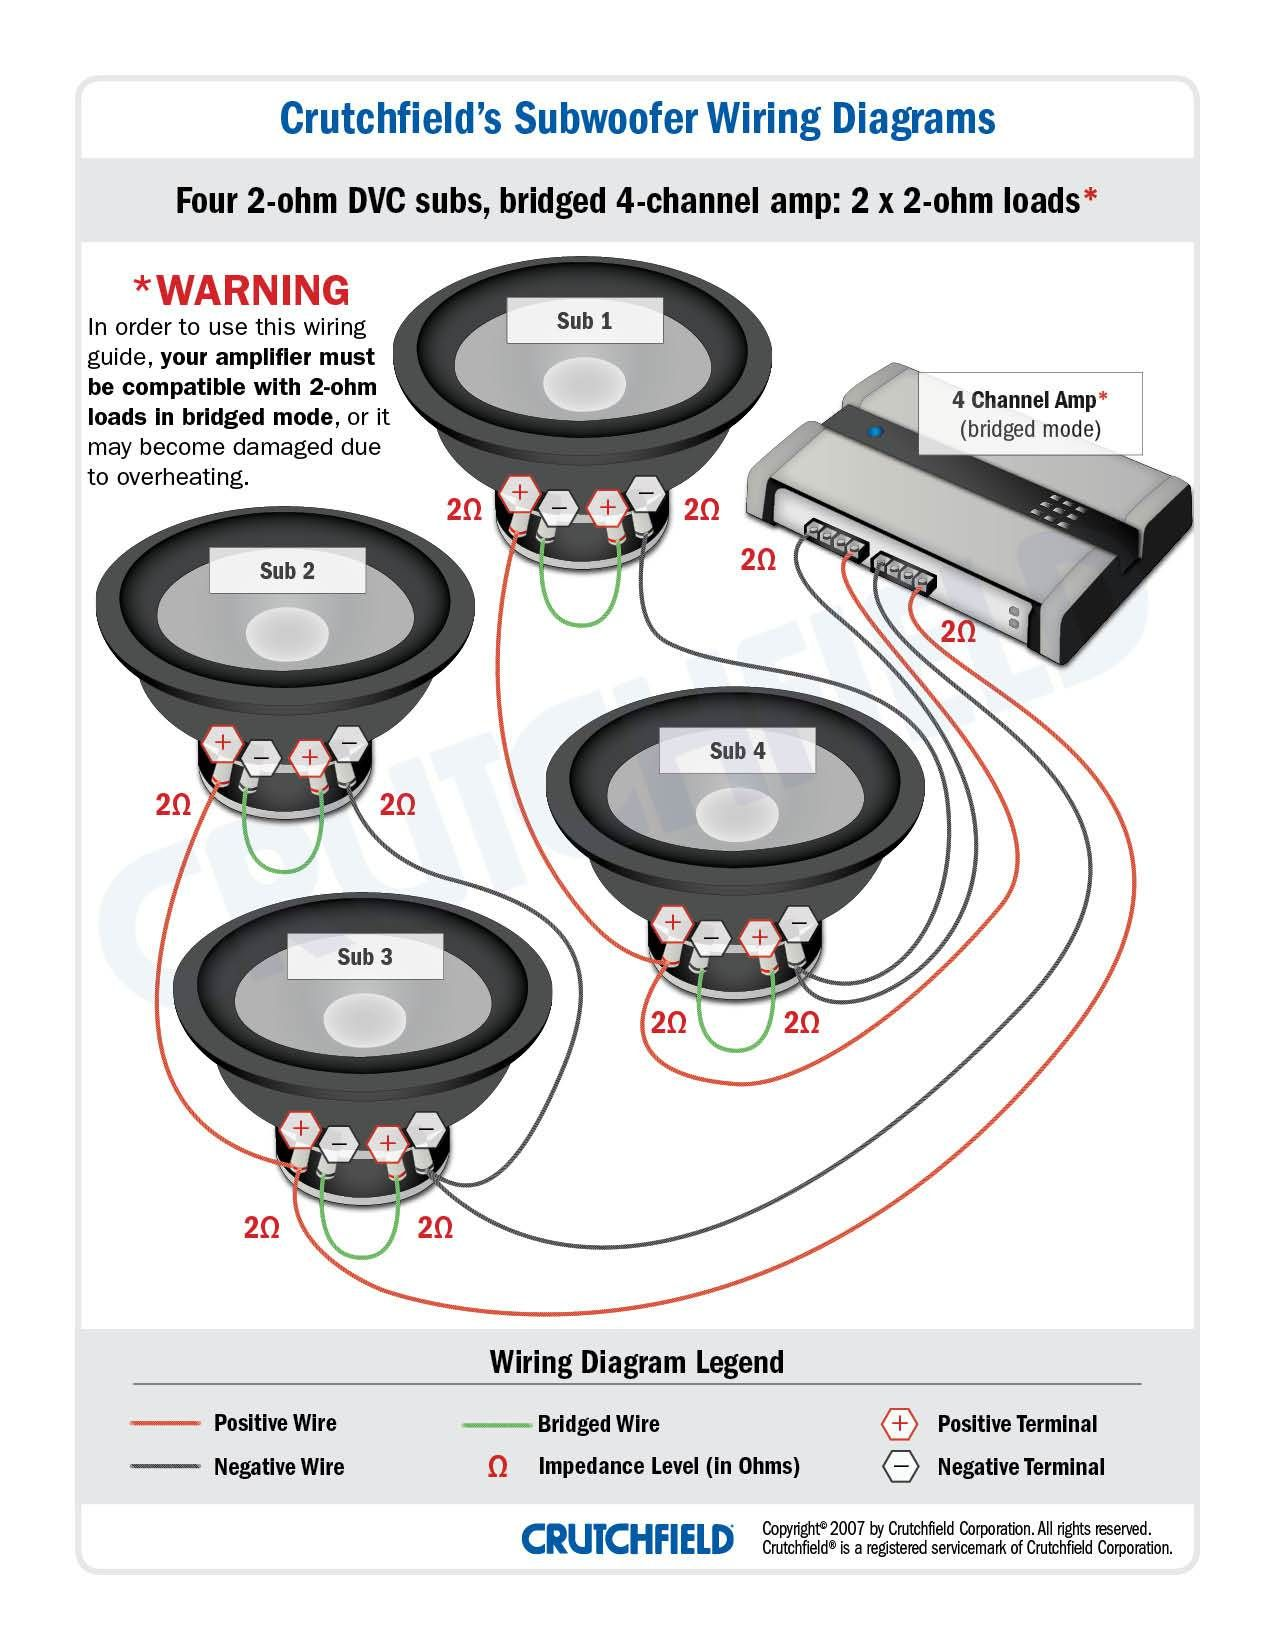 subwoofer wiring diagrams throughout 4 ohm dual voice coil diagram 10 inch rockford fosgate sub wiring diagram [ 1275 x 1650 Pixel ]